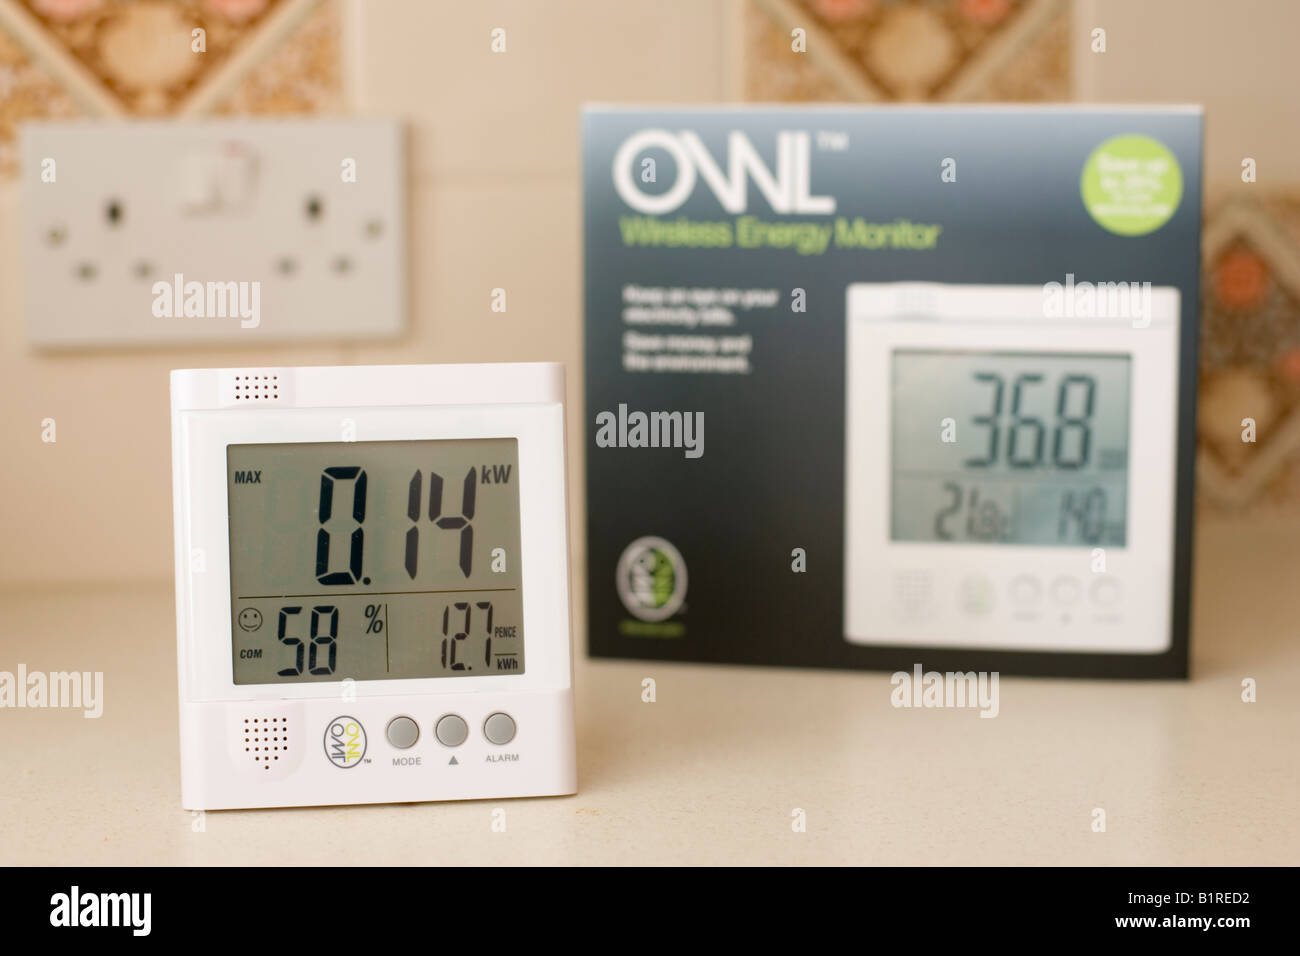 Owl energy monitor measuring electricity use UK - Stock Image